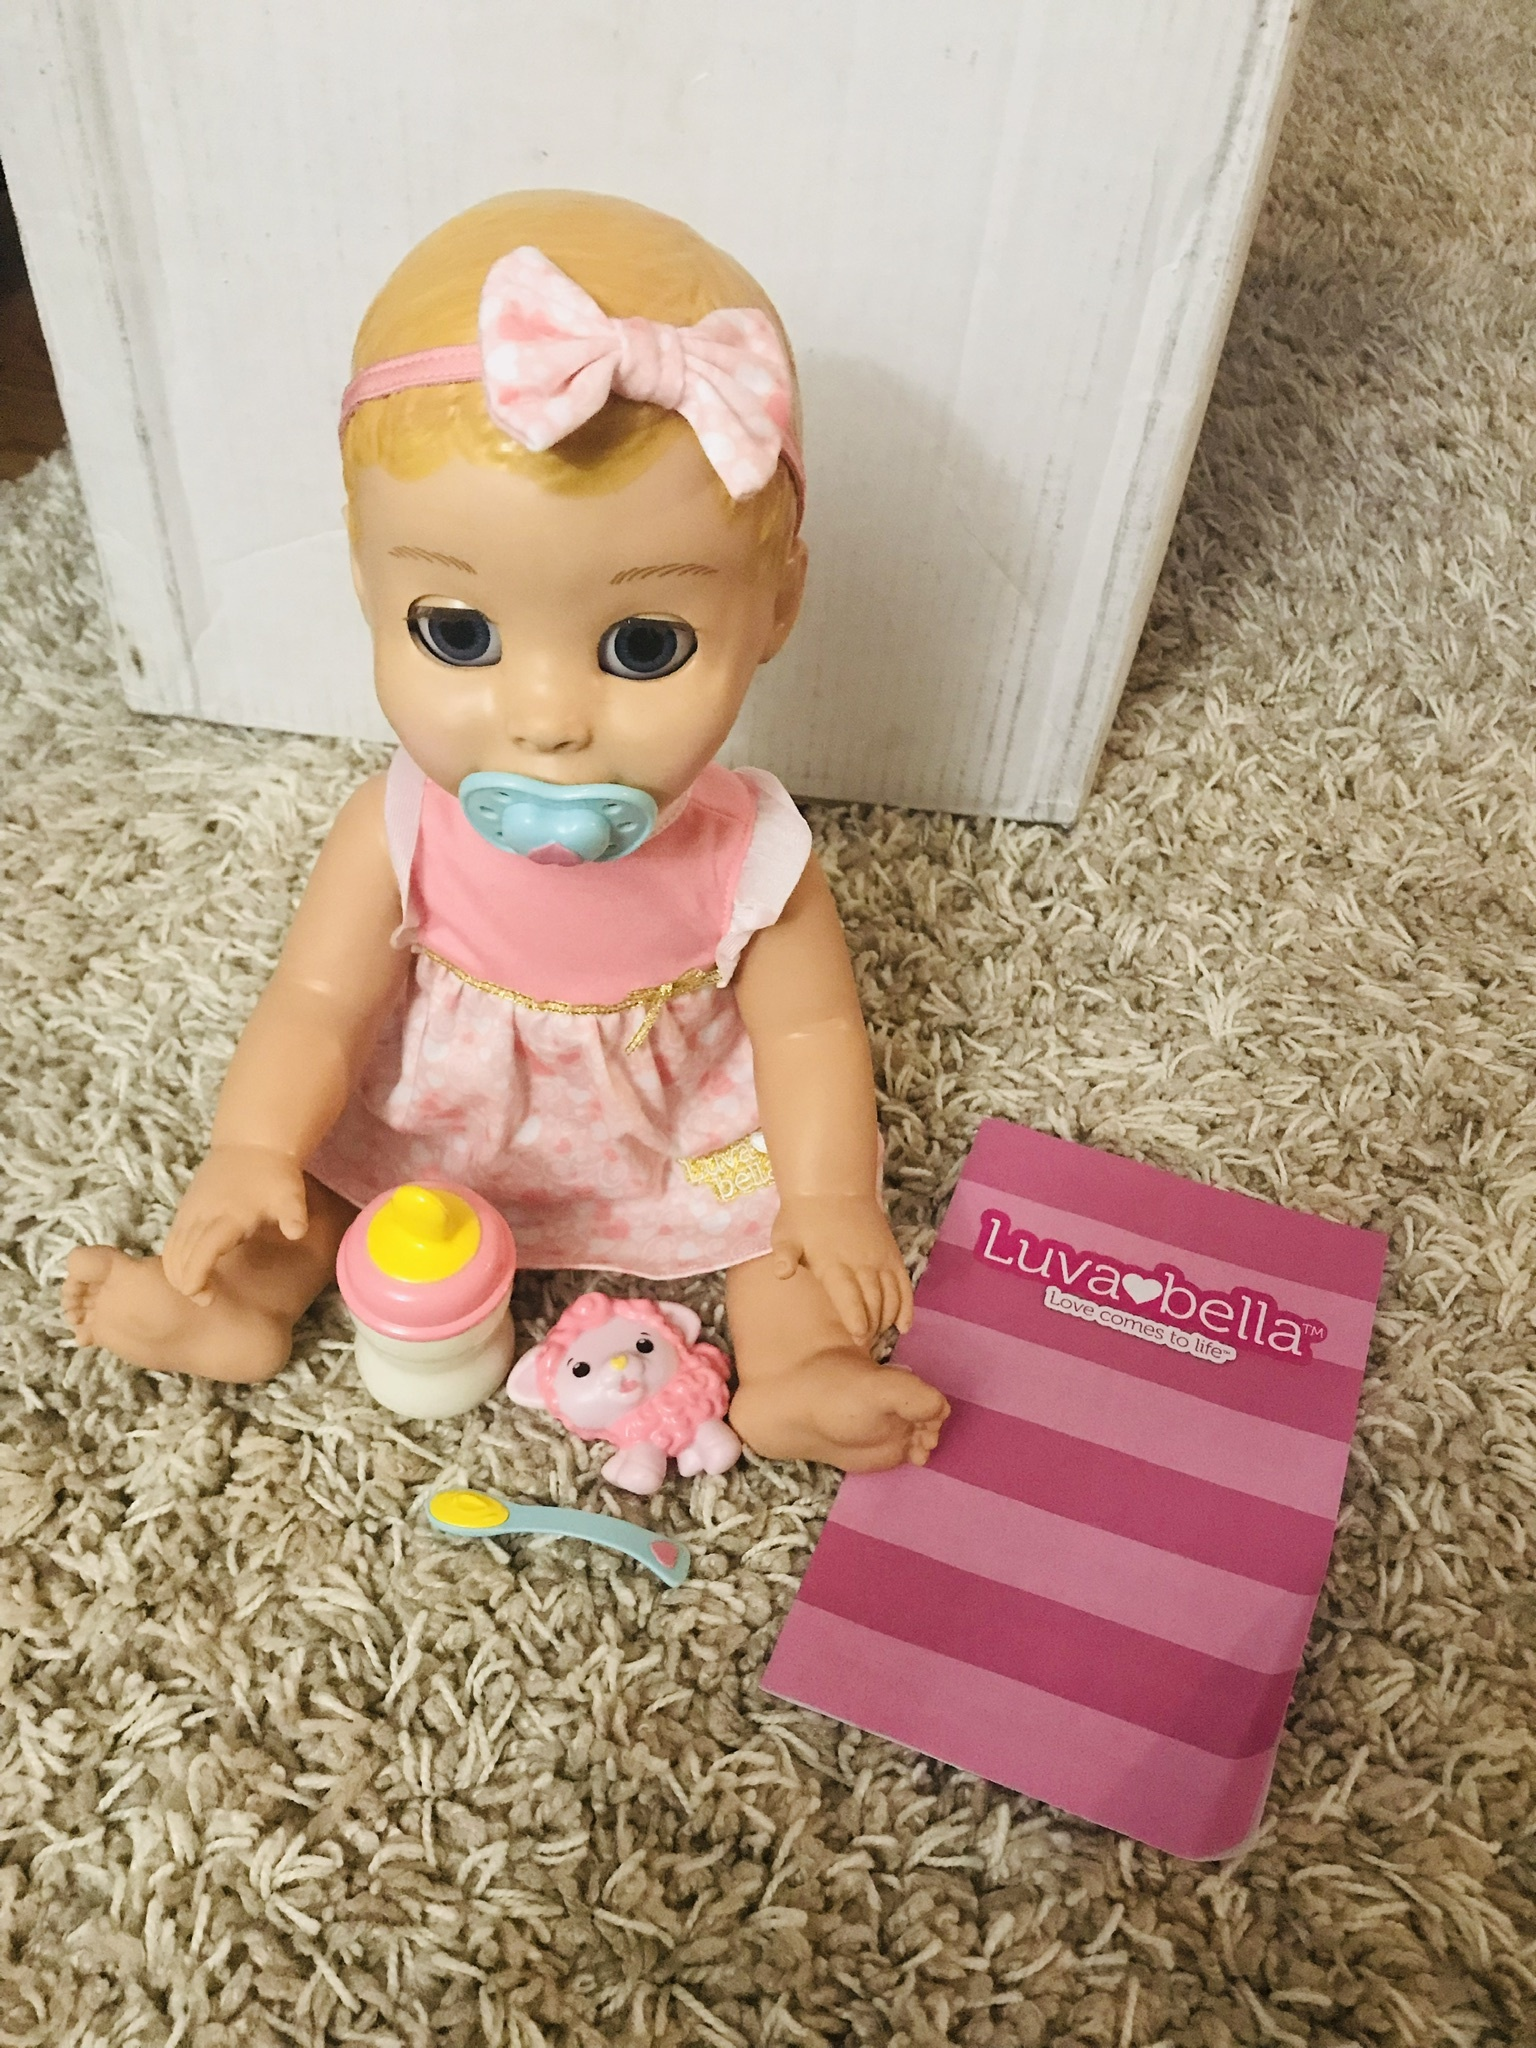 Luvabella Responsive Baby Doll Blonde Hair Reviews In